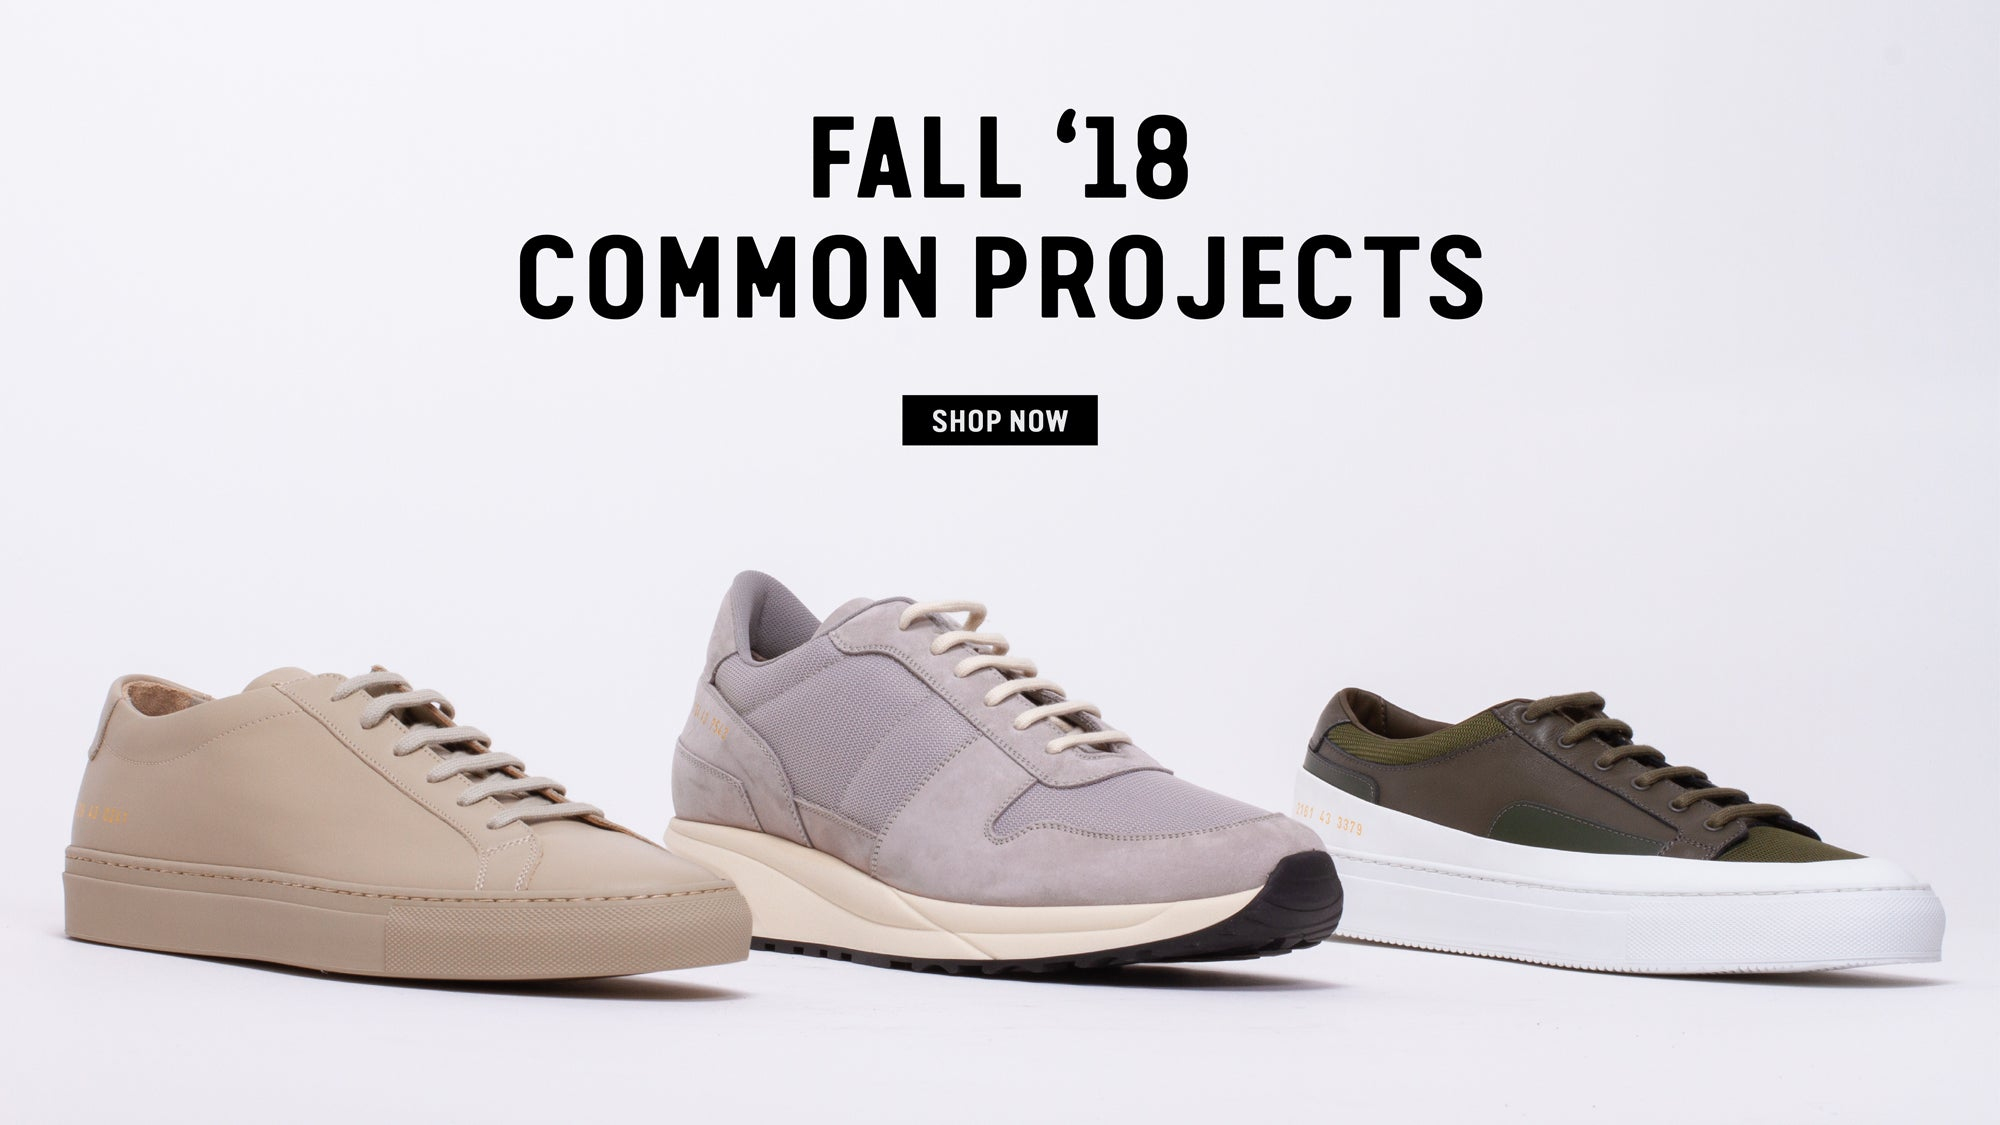 Fall '18 Common Projects